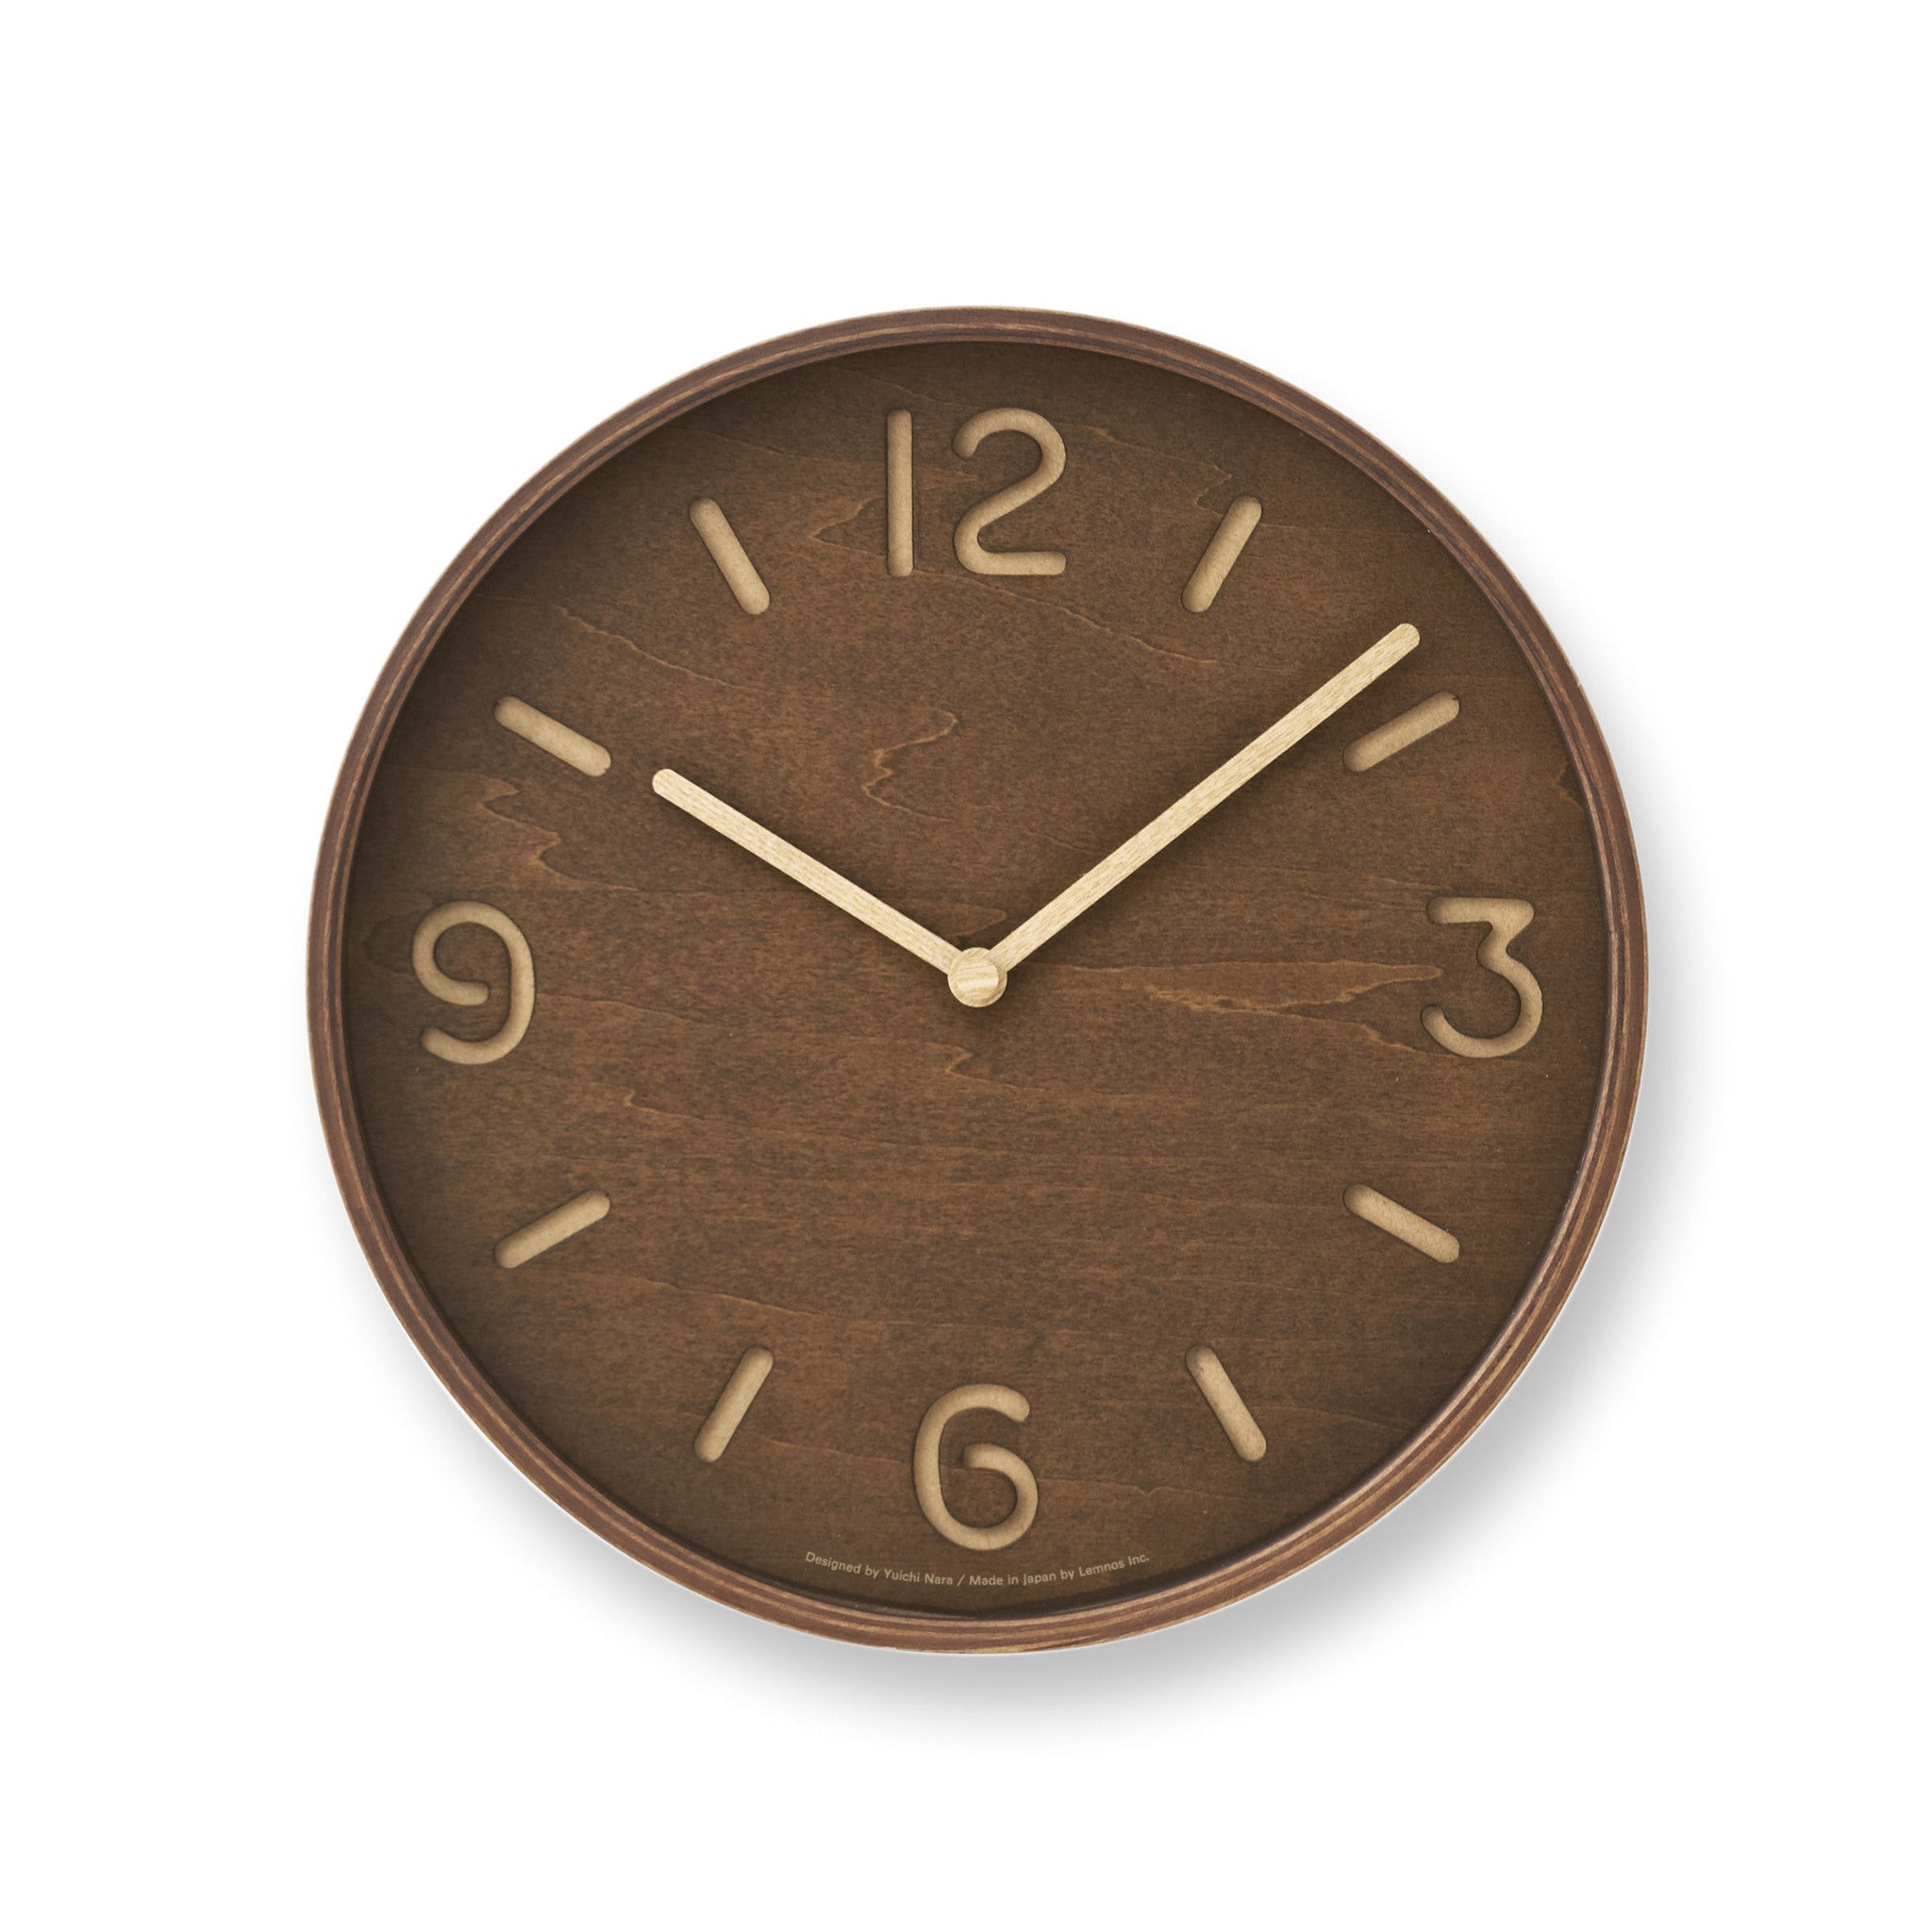 Thompson wall clock design by lemnos burke decor thompson wall clock design by lemnos amipublicfo Images